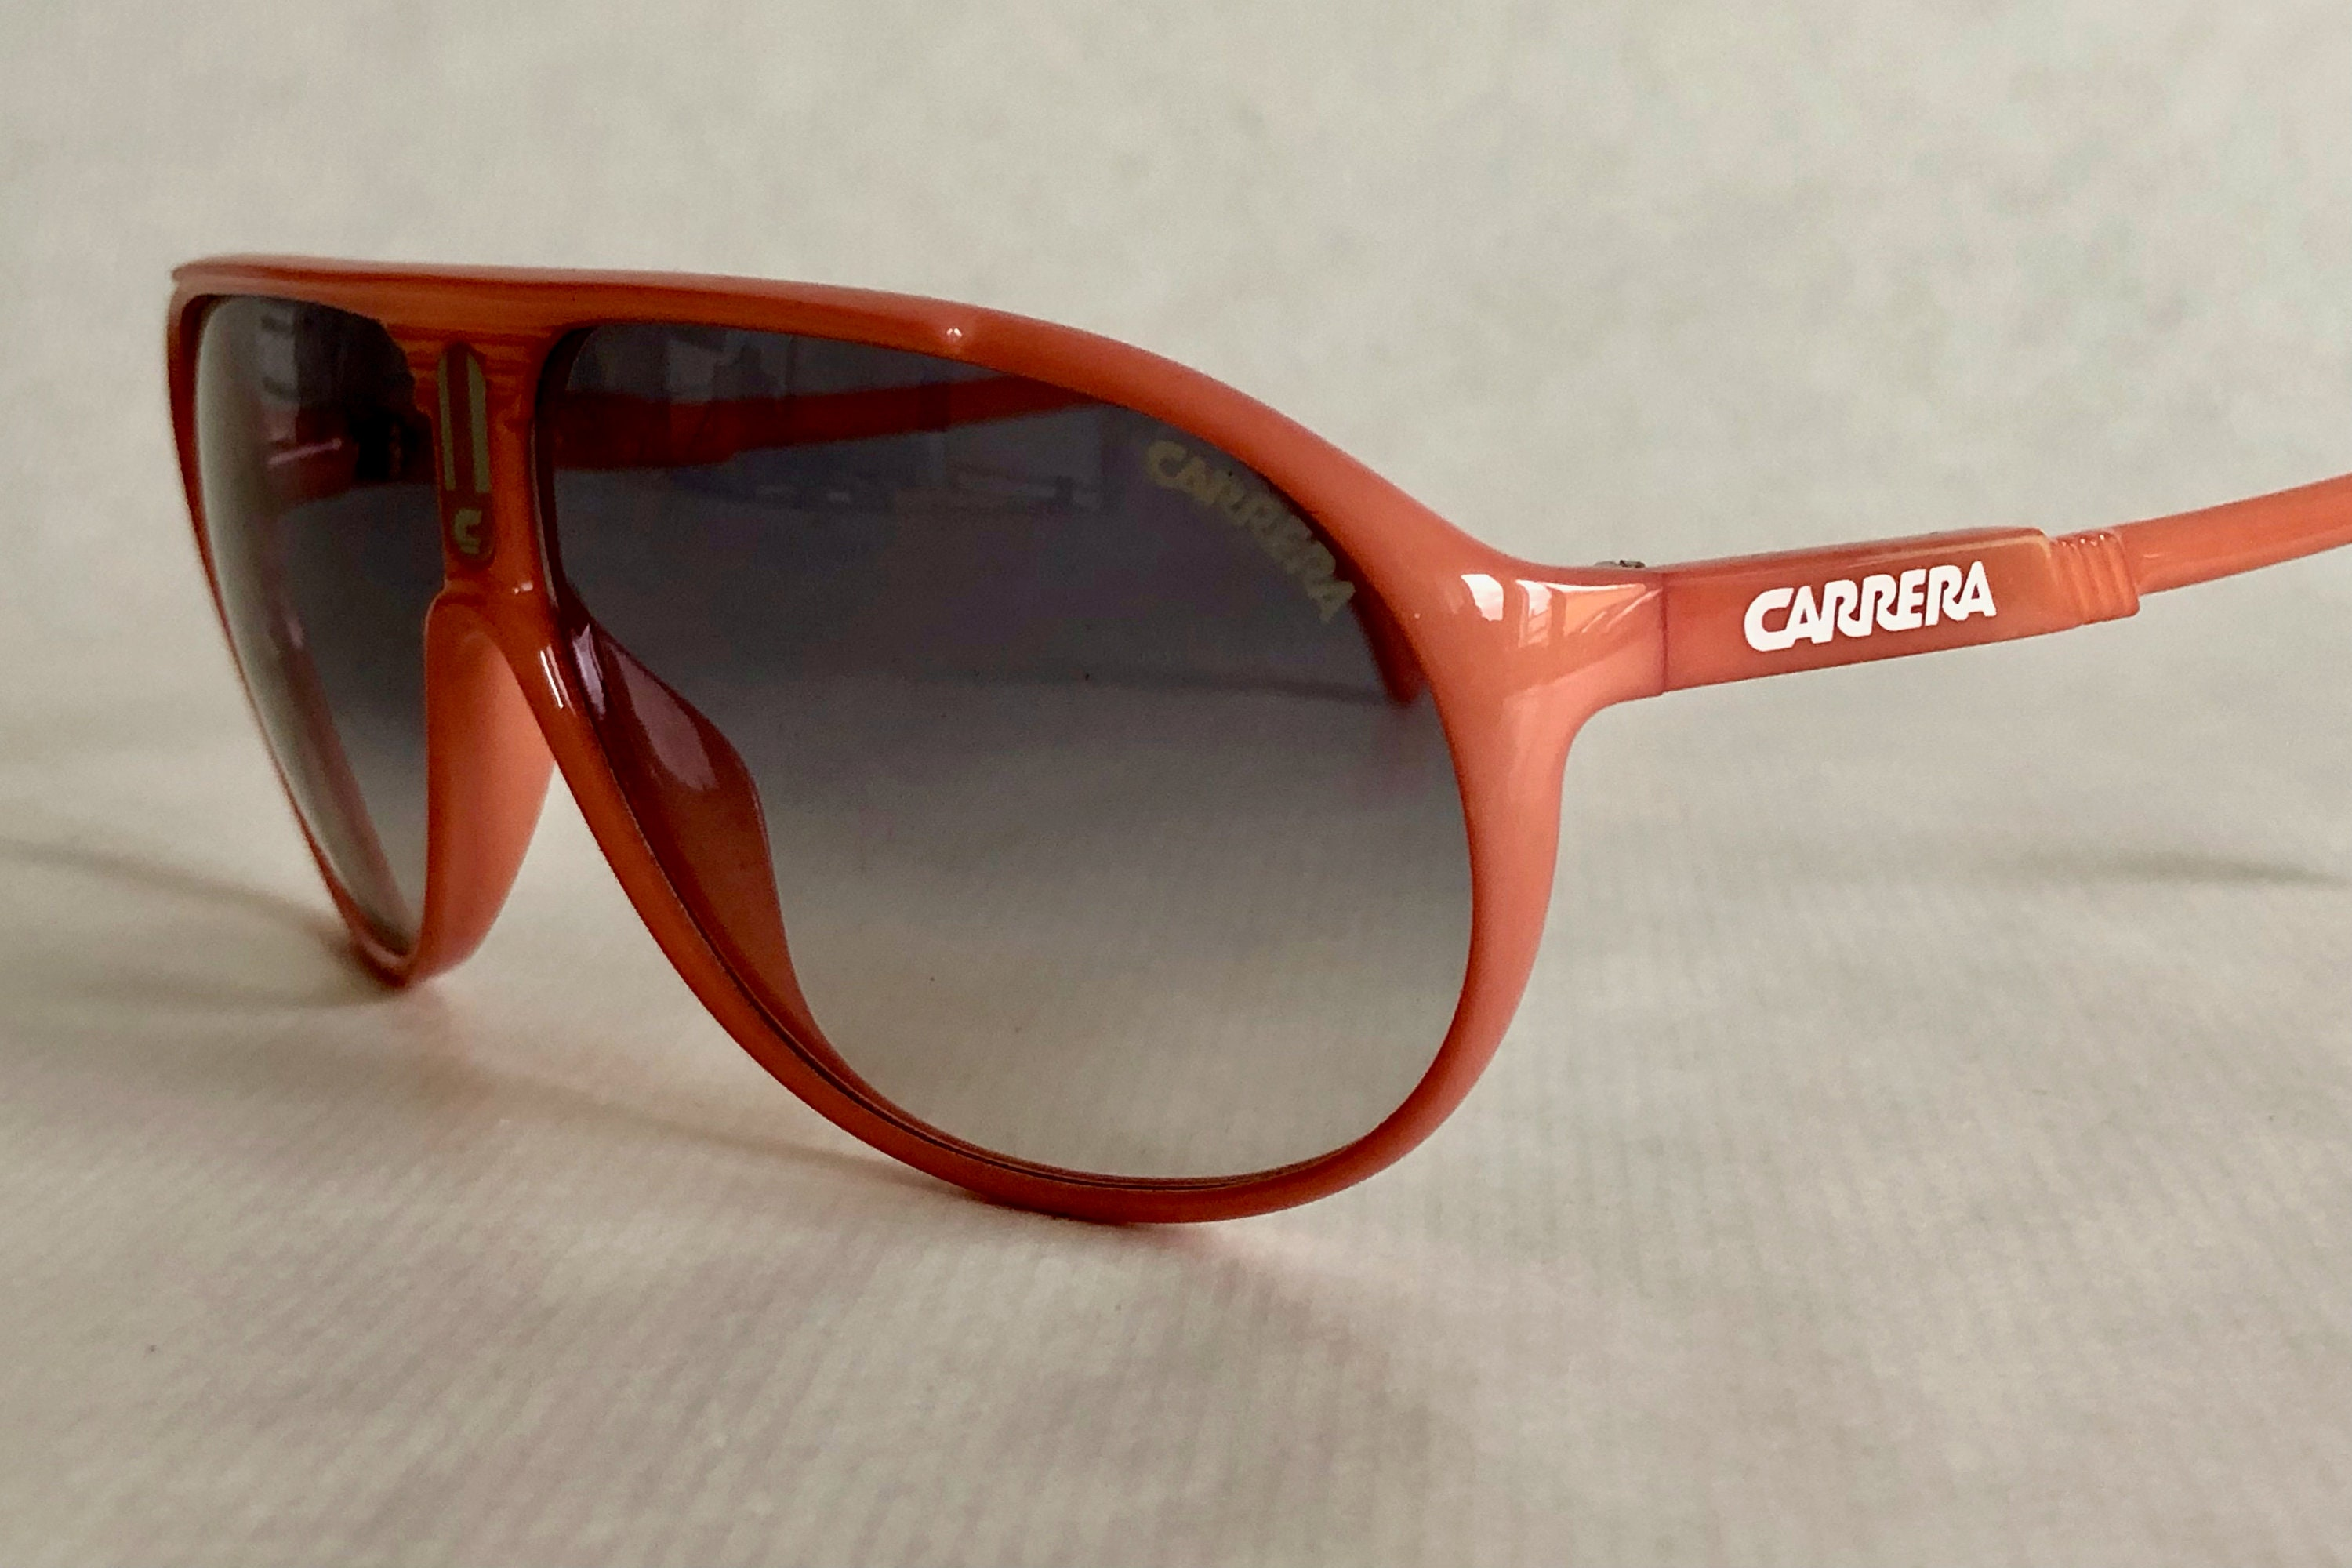 3a802bea4c4d Carrera 5412 30 Vintage Sunglasses – New Old Stock – Made in Austria